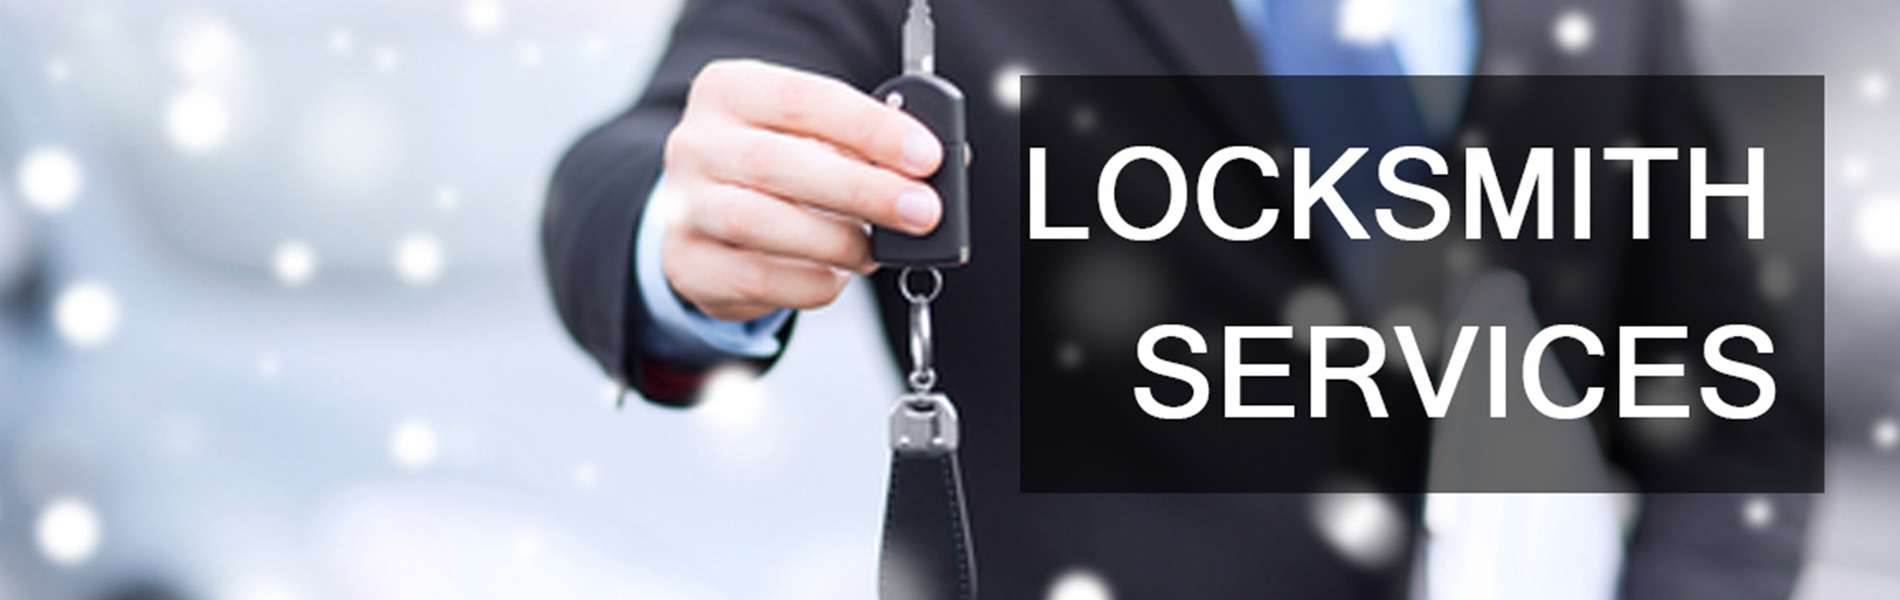 North India Mound Locksmith Store, North India Mound, MO 816-407-8183